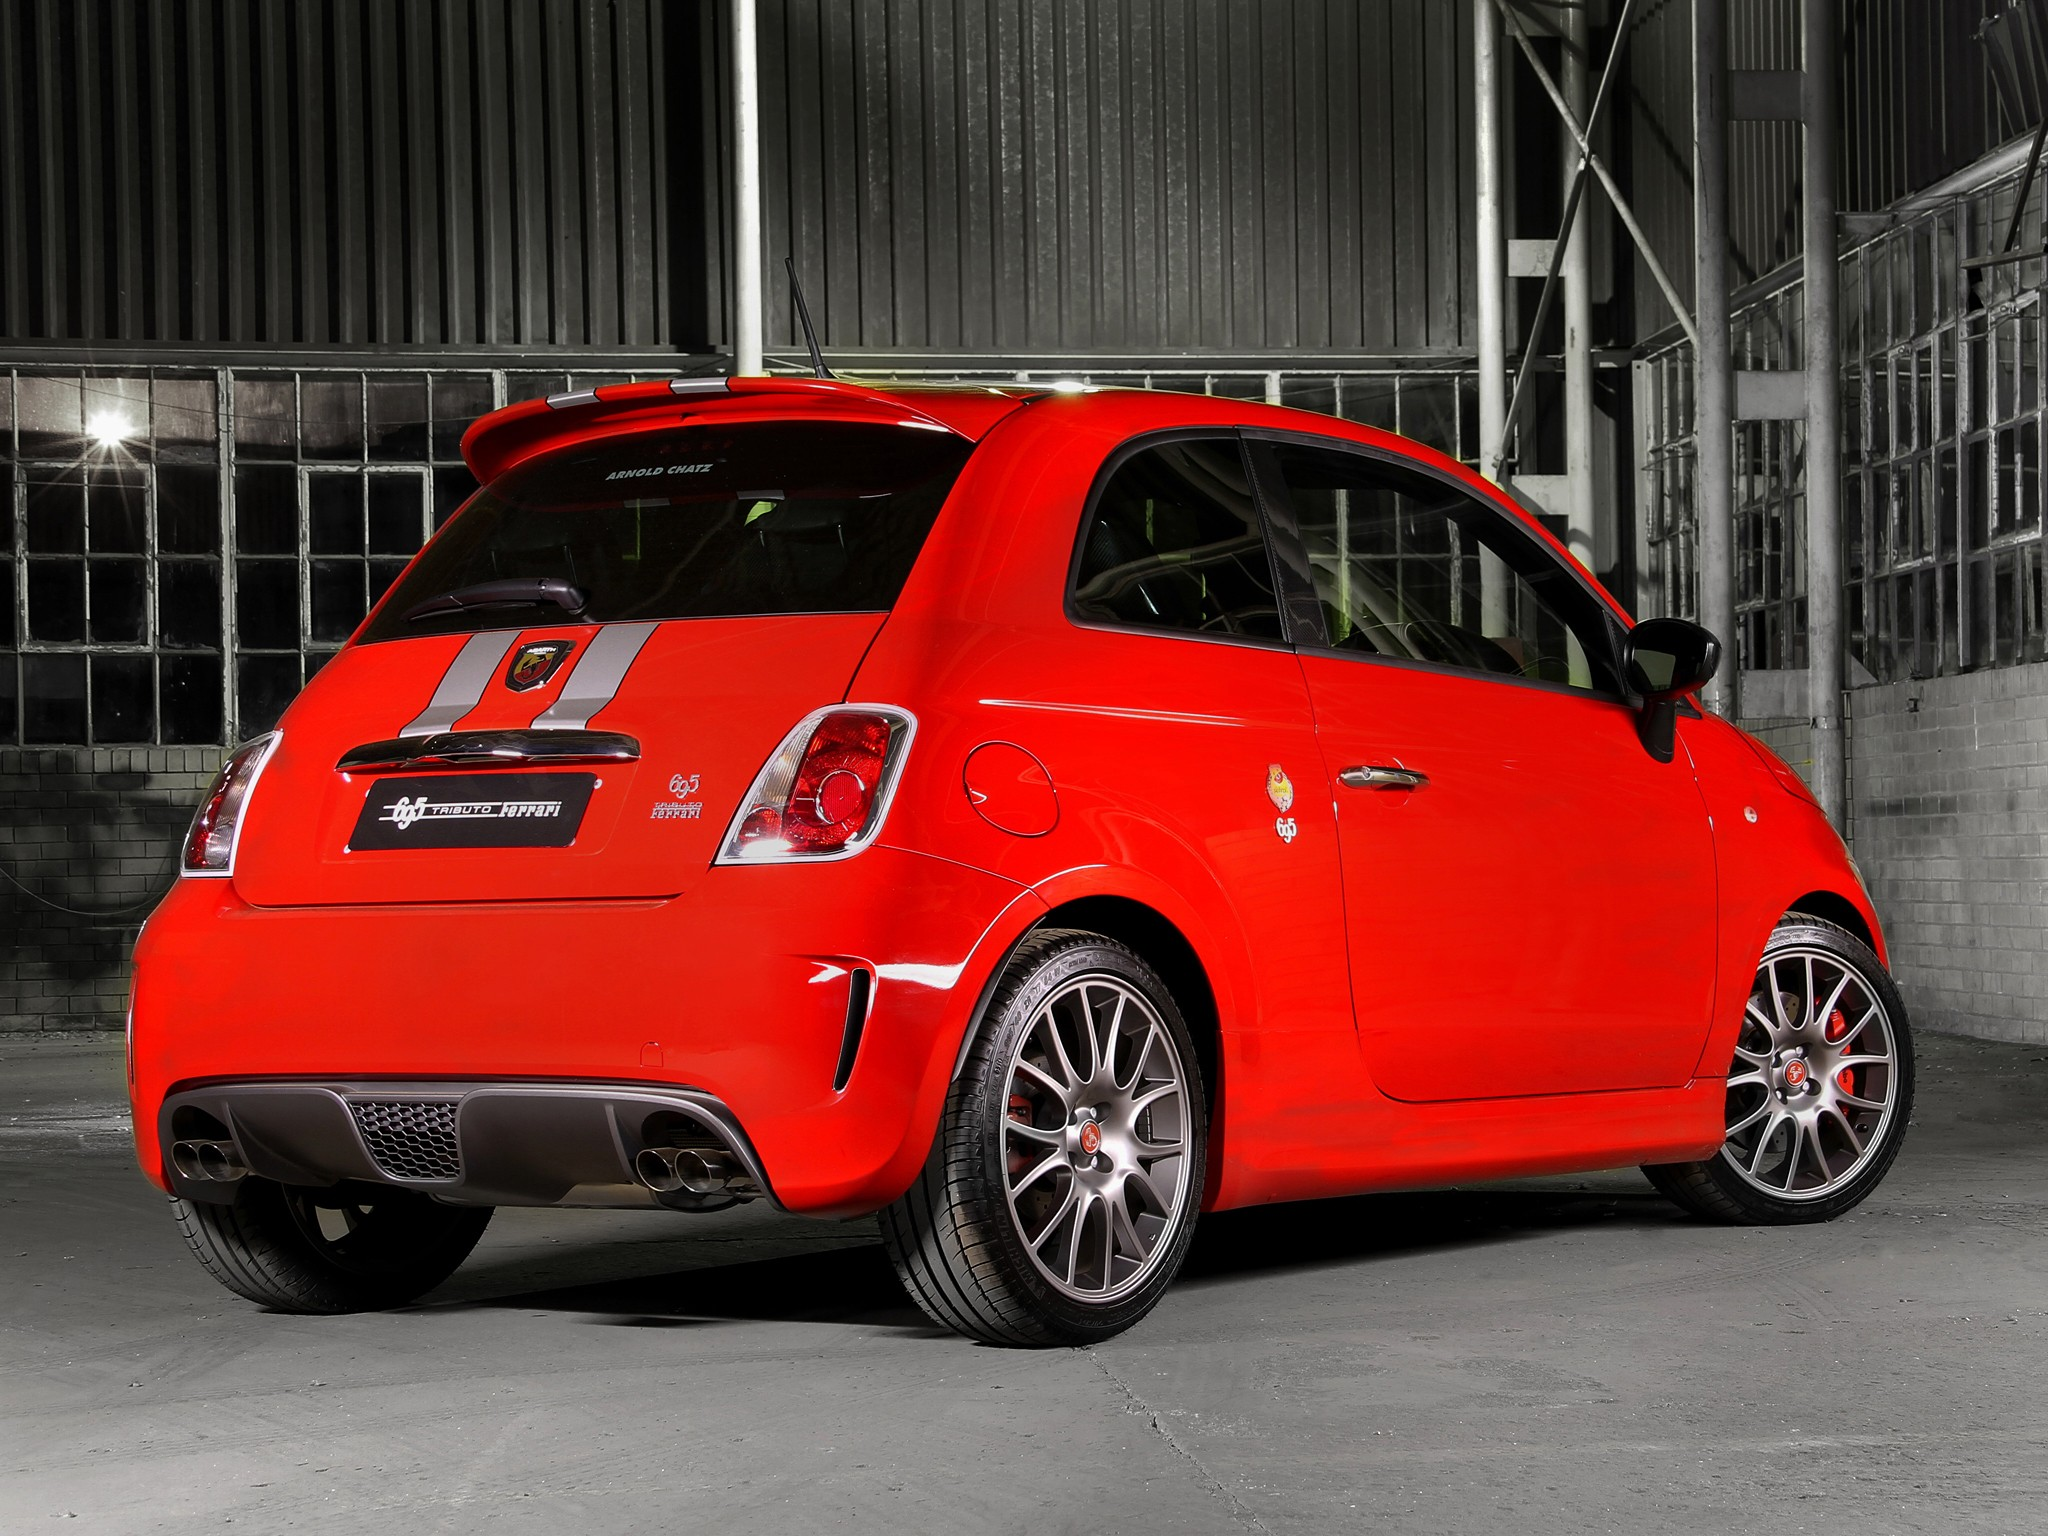 fiat news rendering cars digital abarth rumors specs trends size engine